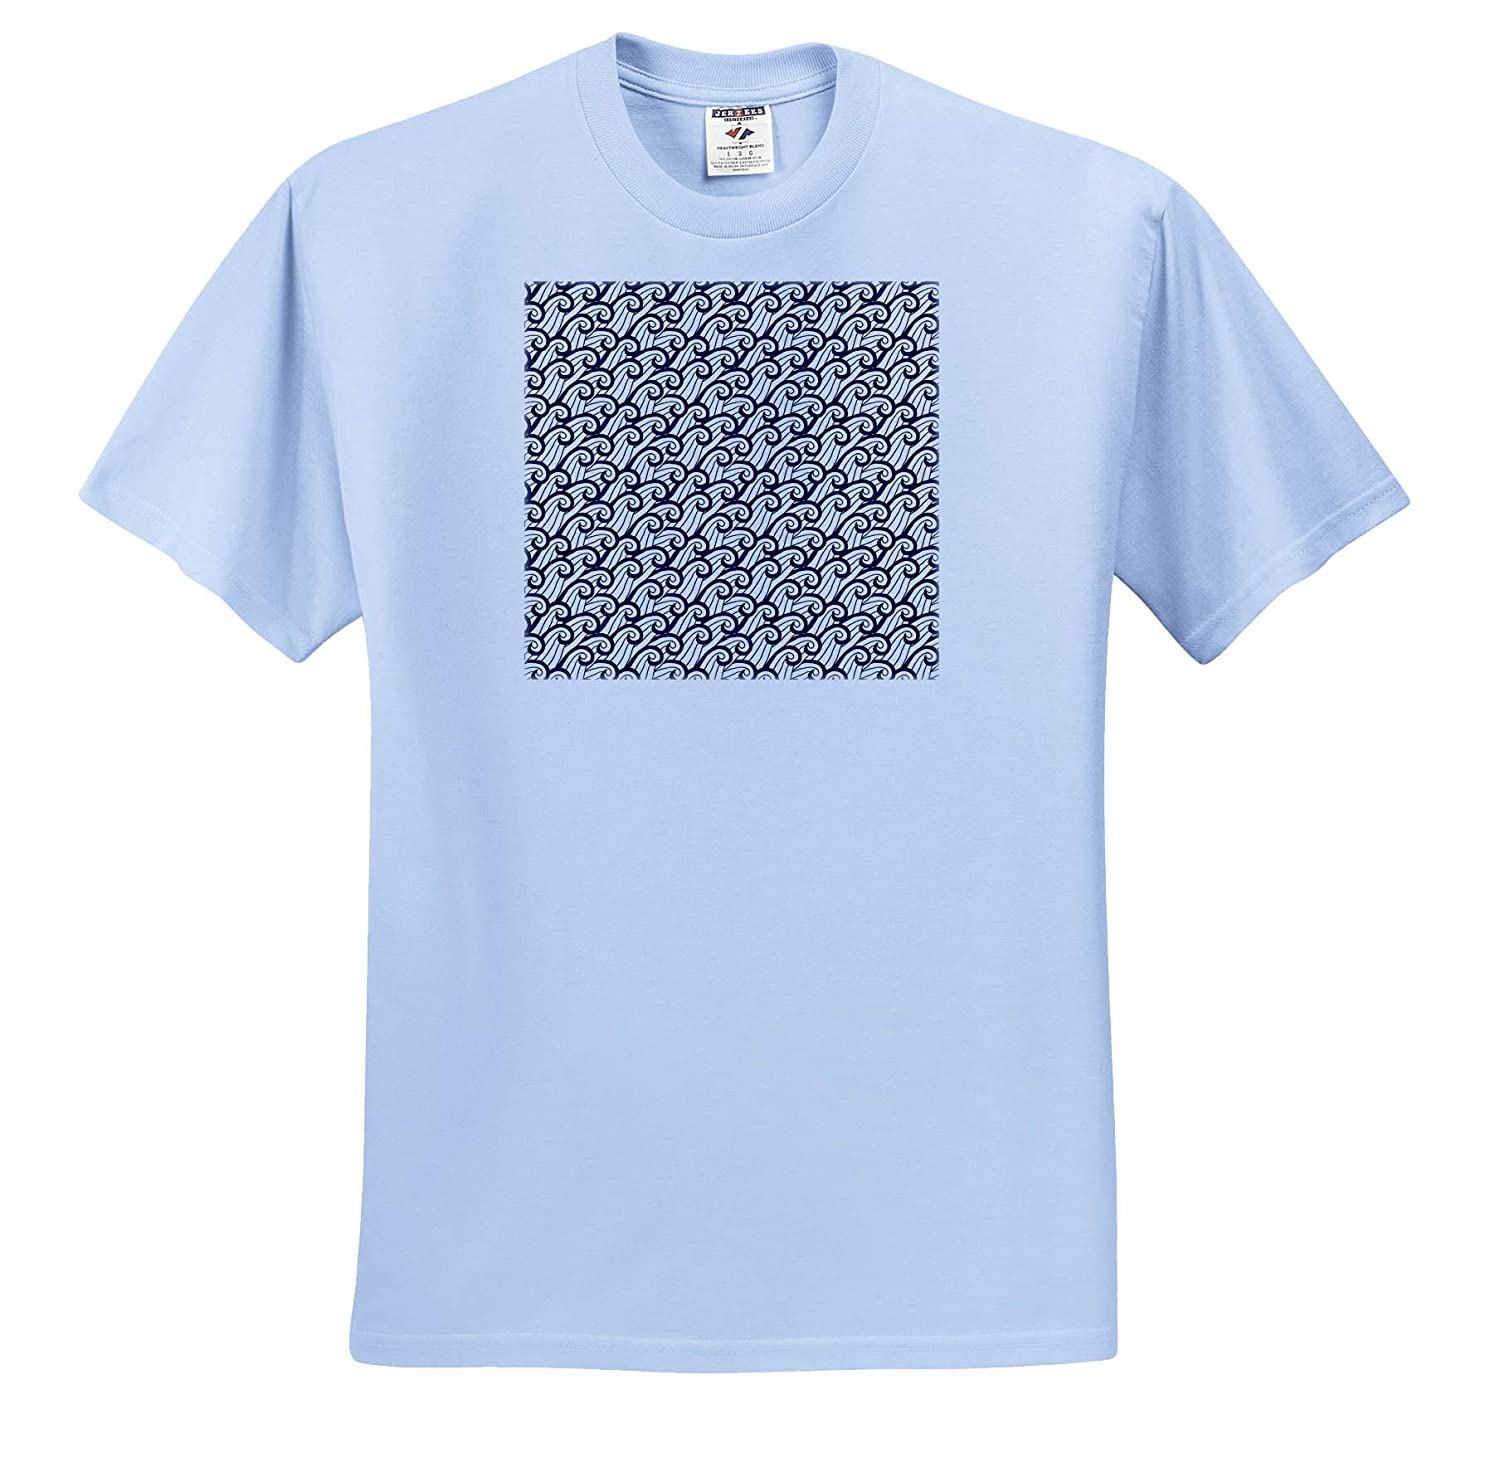 Adult T-Shirt XL Contemporary Blue and White Ocean Waves Pattern Patterns 3dRose Anne Marie Baugh ts/_309774